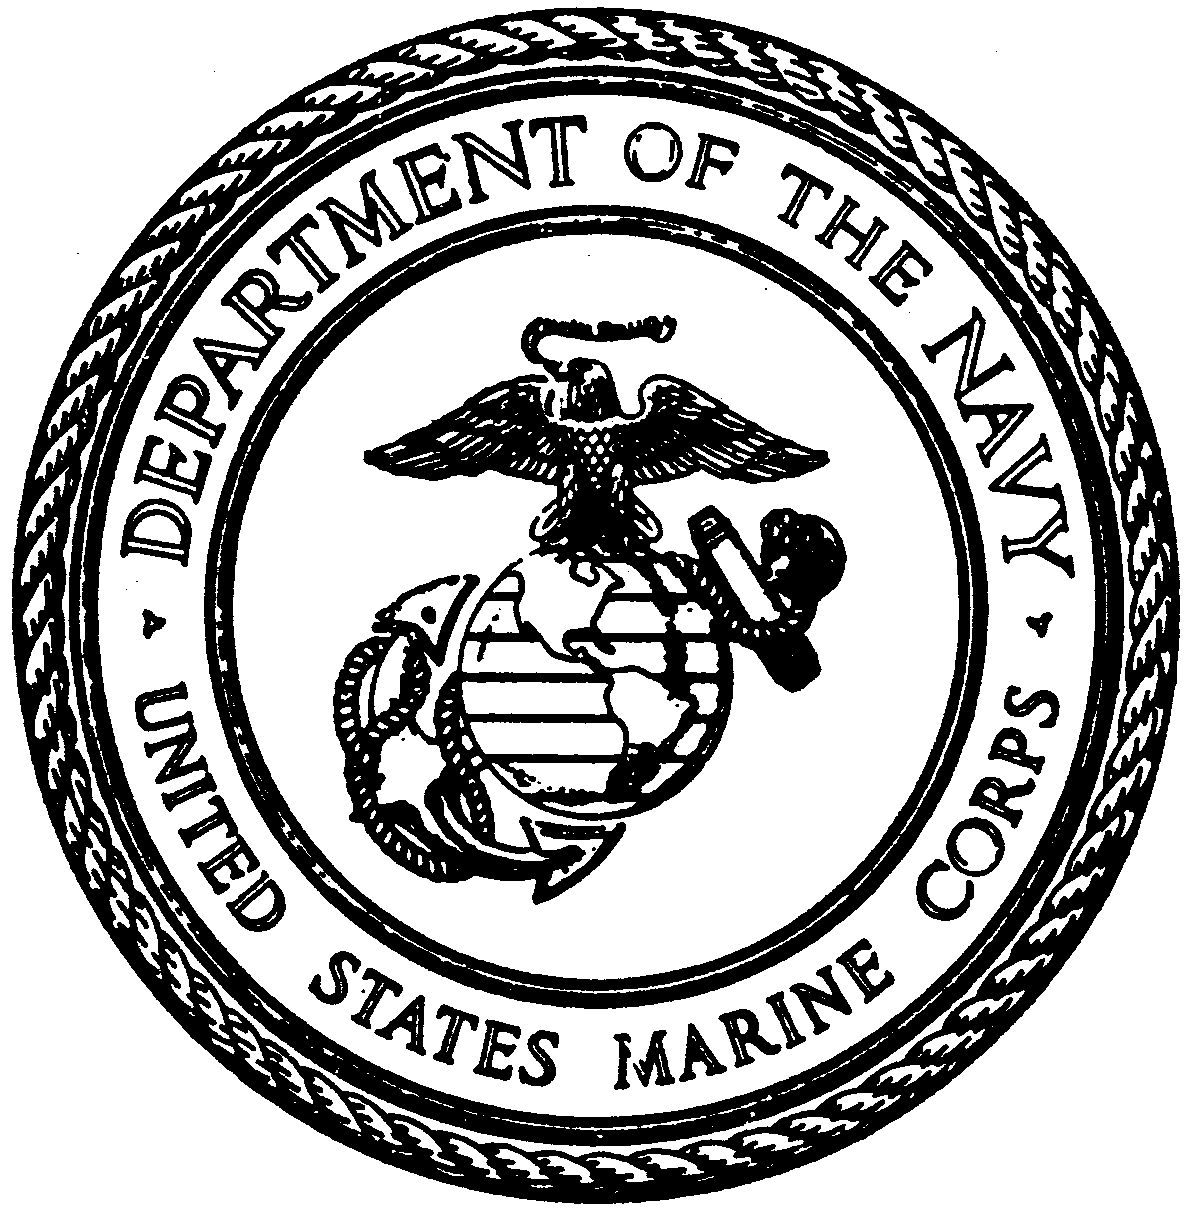 1189x1216 Fileus Marinecorps Seal Eo10538.jpg